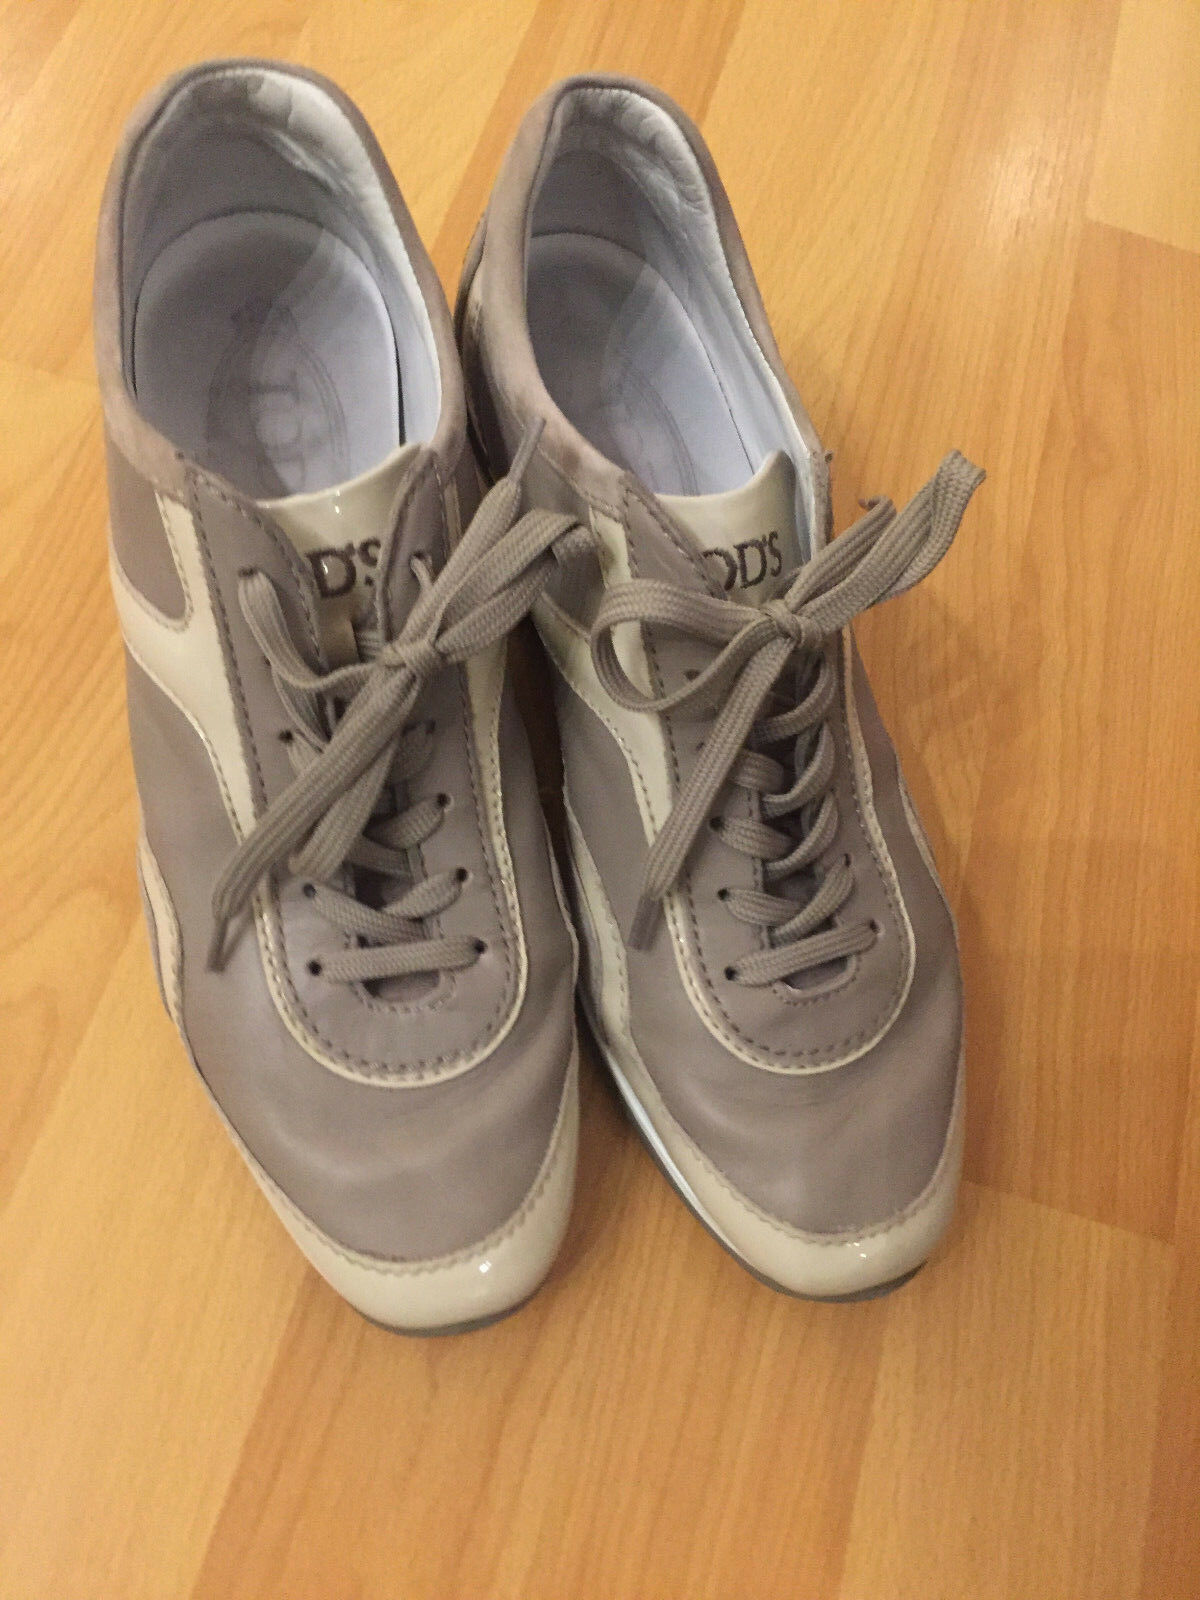 Preowned Tod's Low-tops & Trainers Pale Taupe Suede Wedge Sneaker SZ 36 1/2   GA